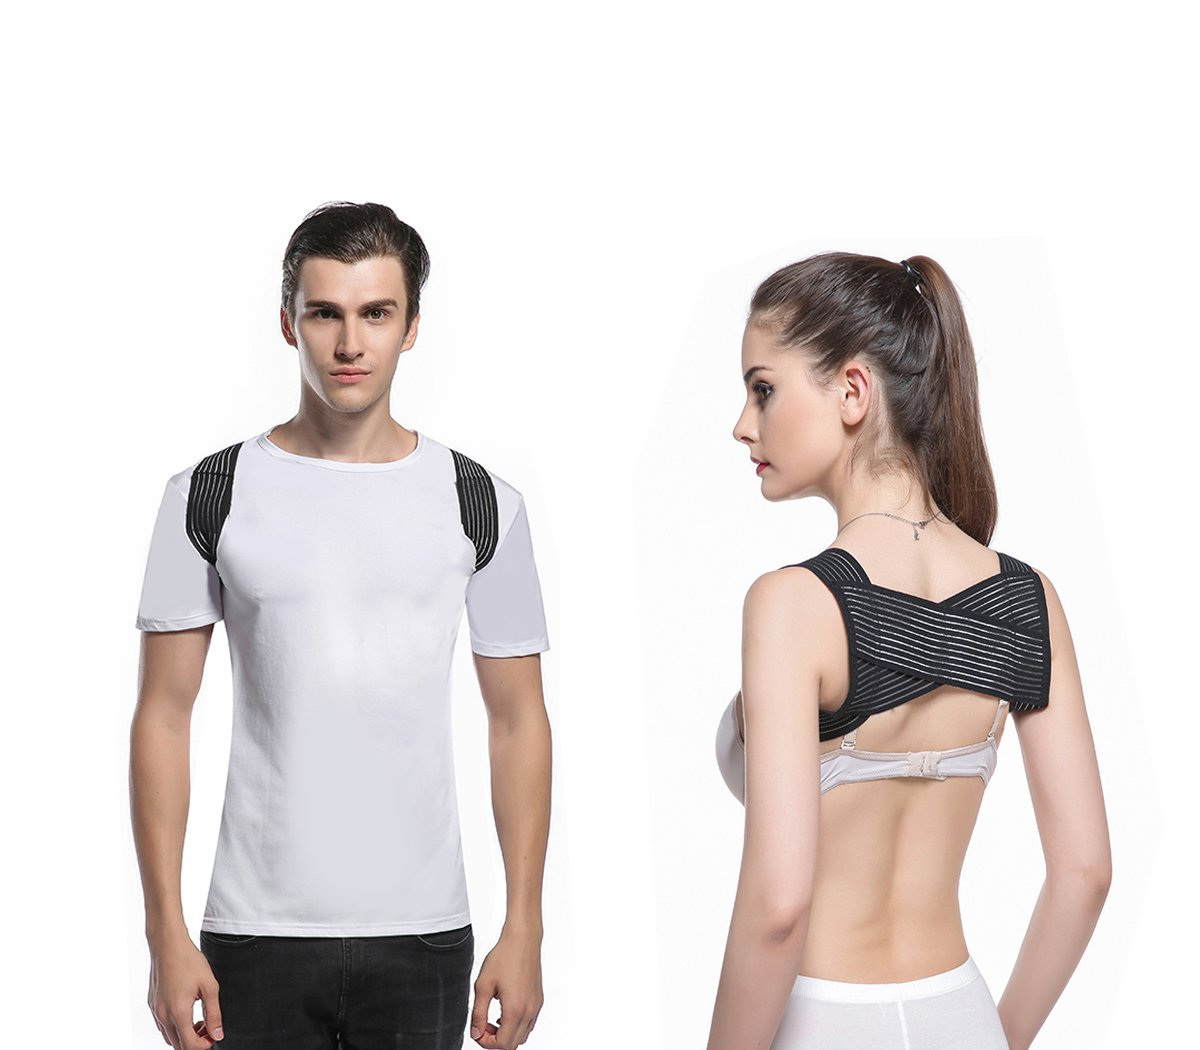 Back Posture Corrector for Men and Women-Comfortable Upper Back Brace Clavicle Support Device - Front Adjustable Straps & Breathable Posture Under Clothes Support -Injury Rehab (Medium)